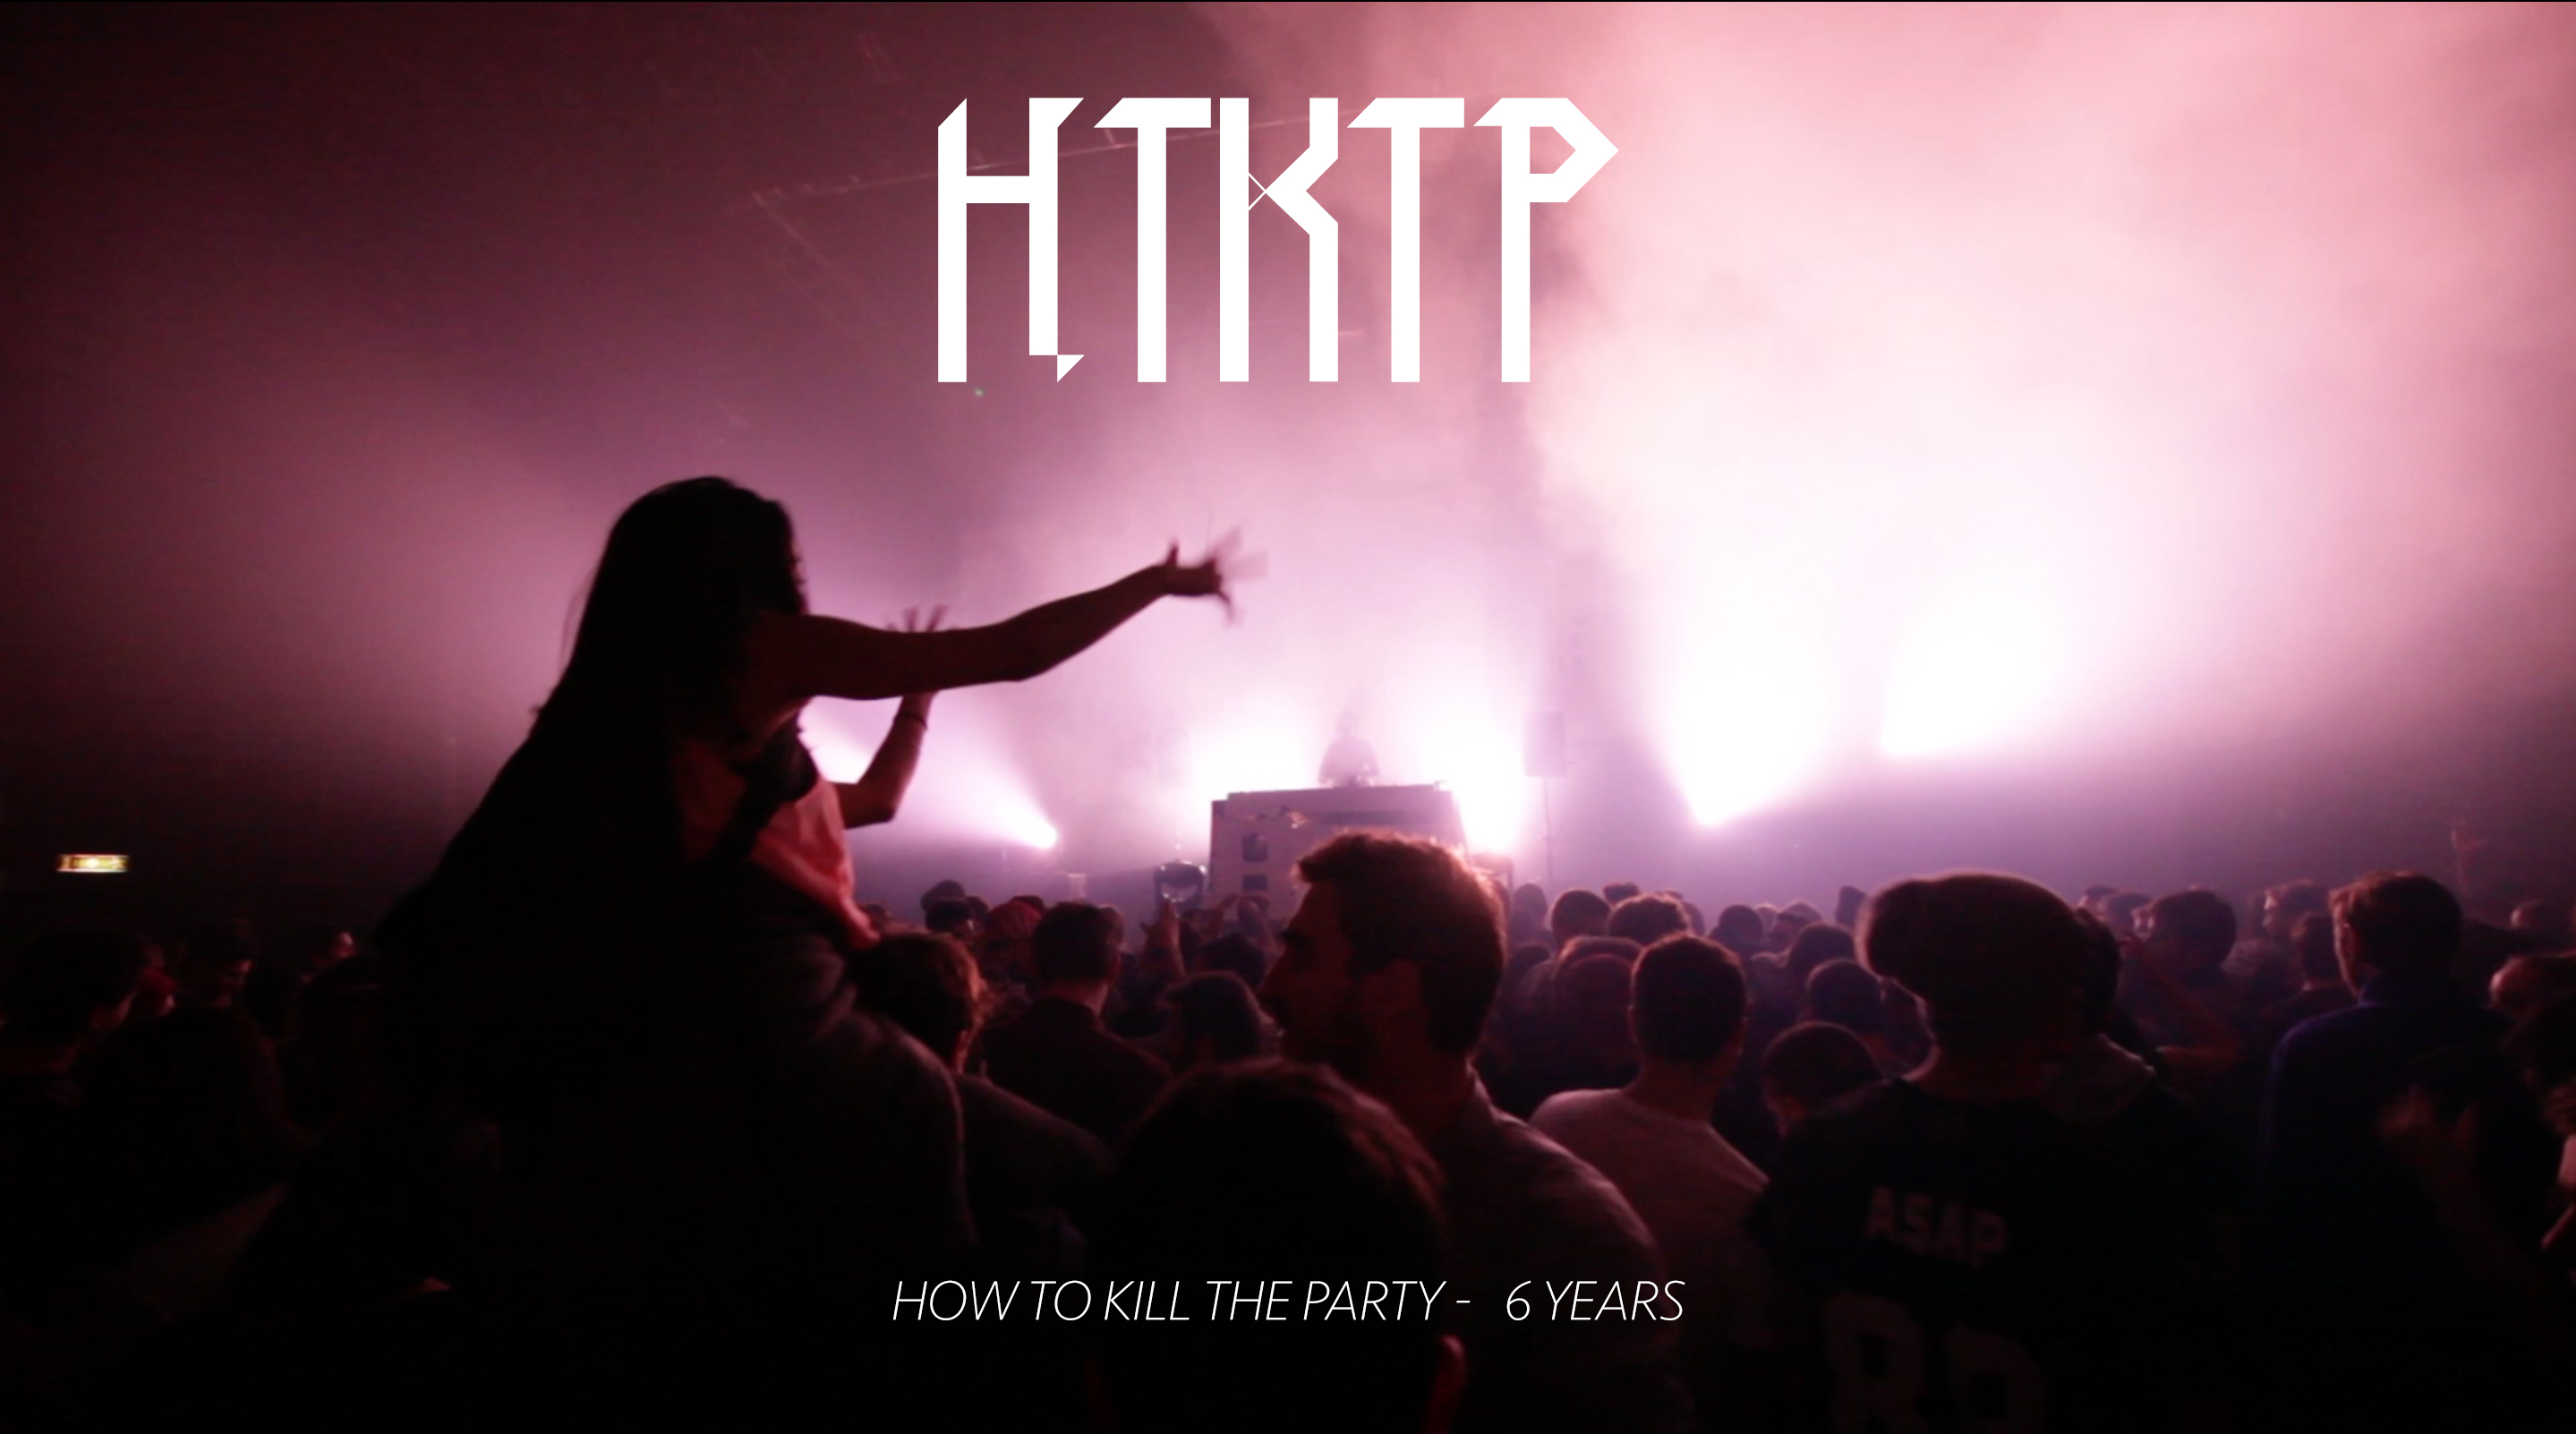 How To Kill The Party - 6 years